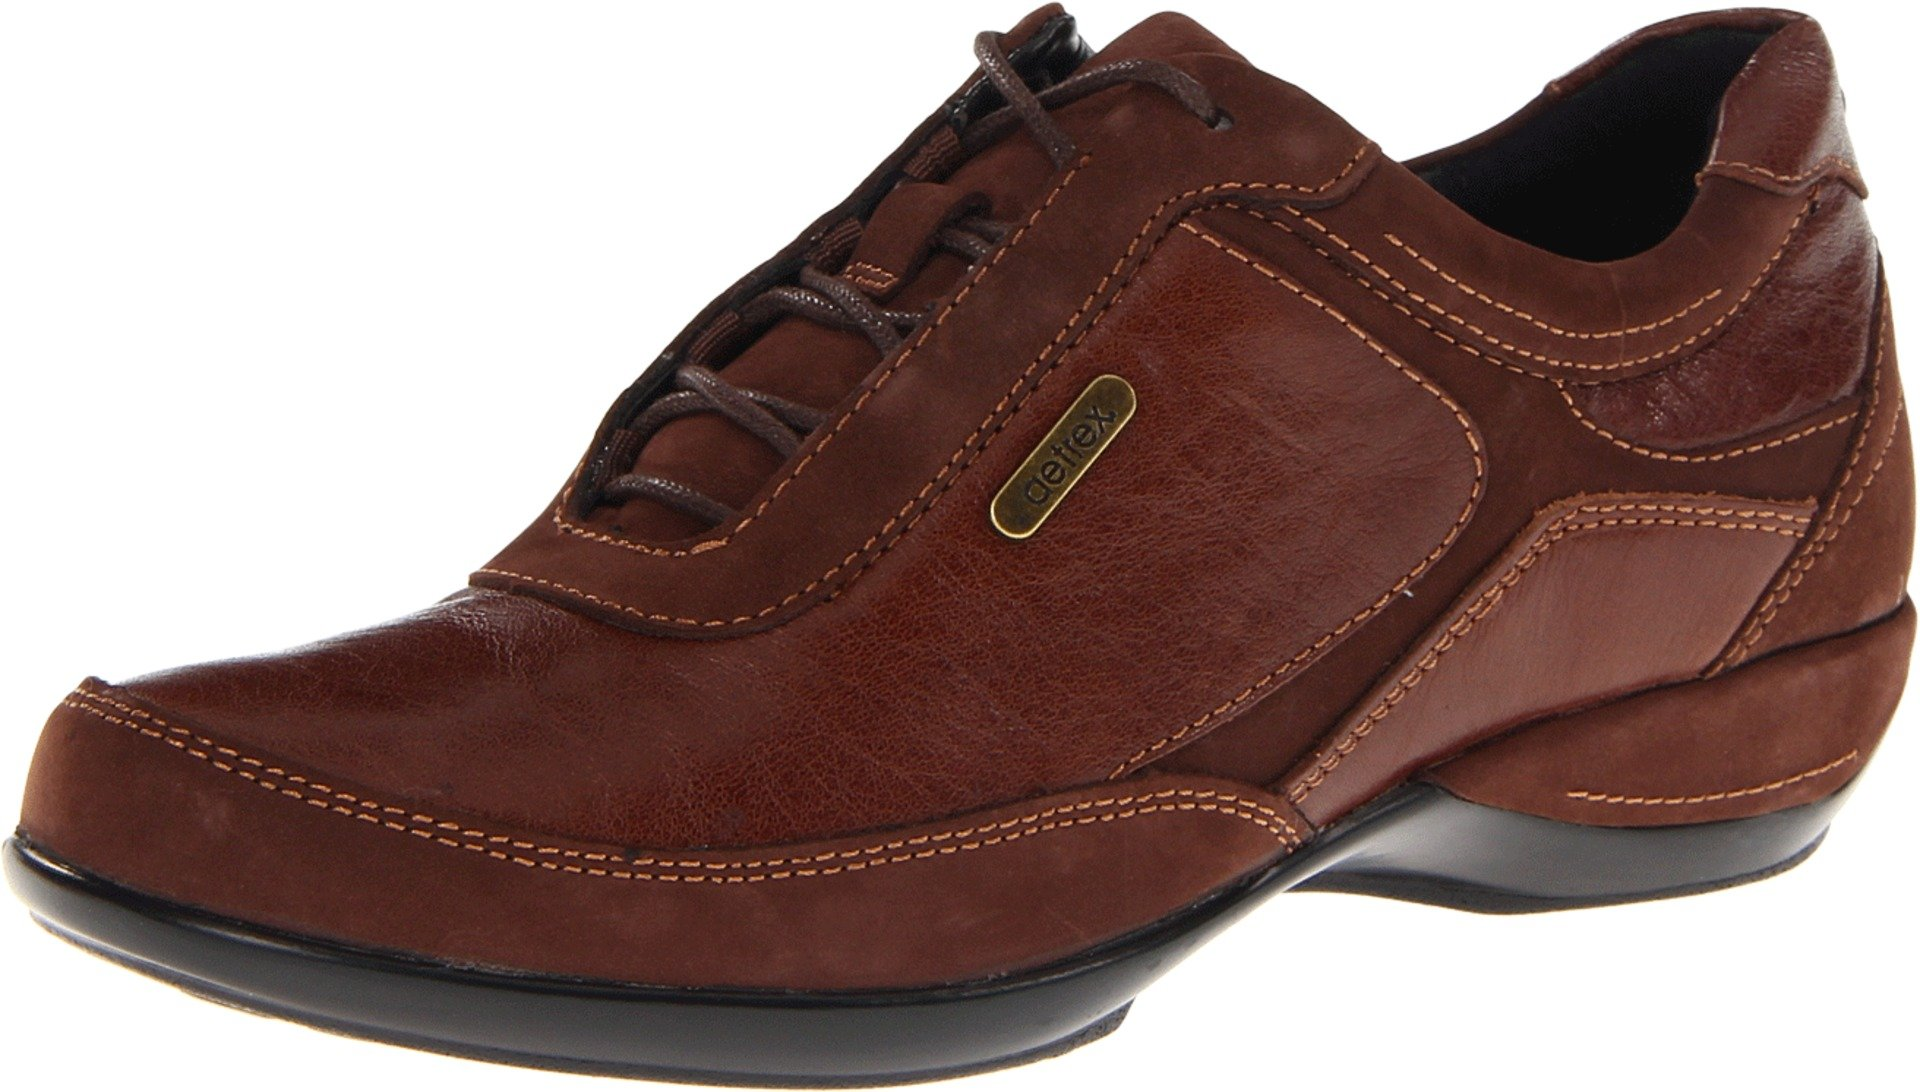 Aetrex Women's Holly Lace-Up Oxford, Brown, 6 M US